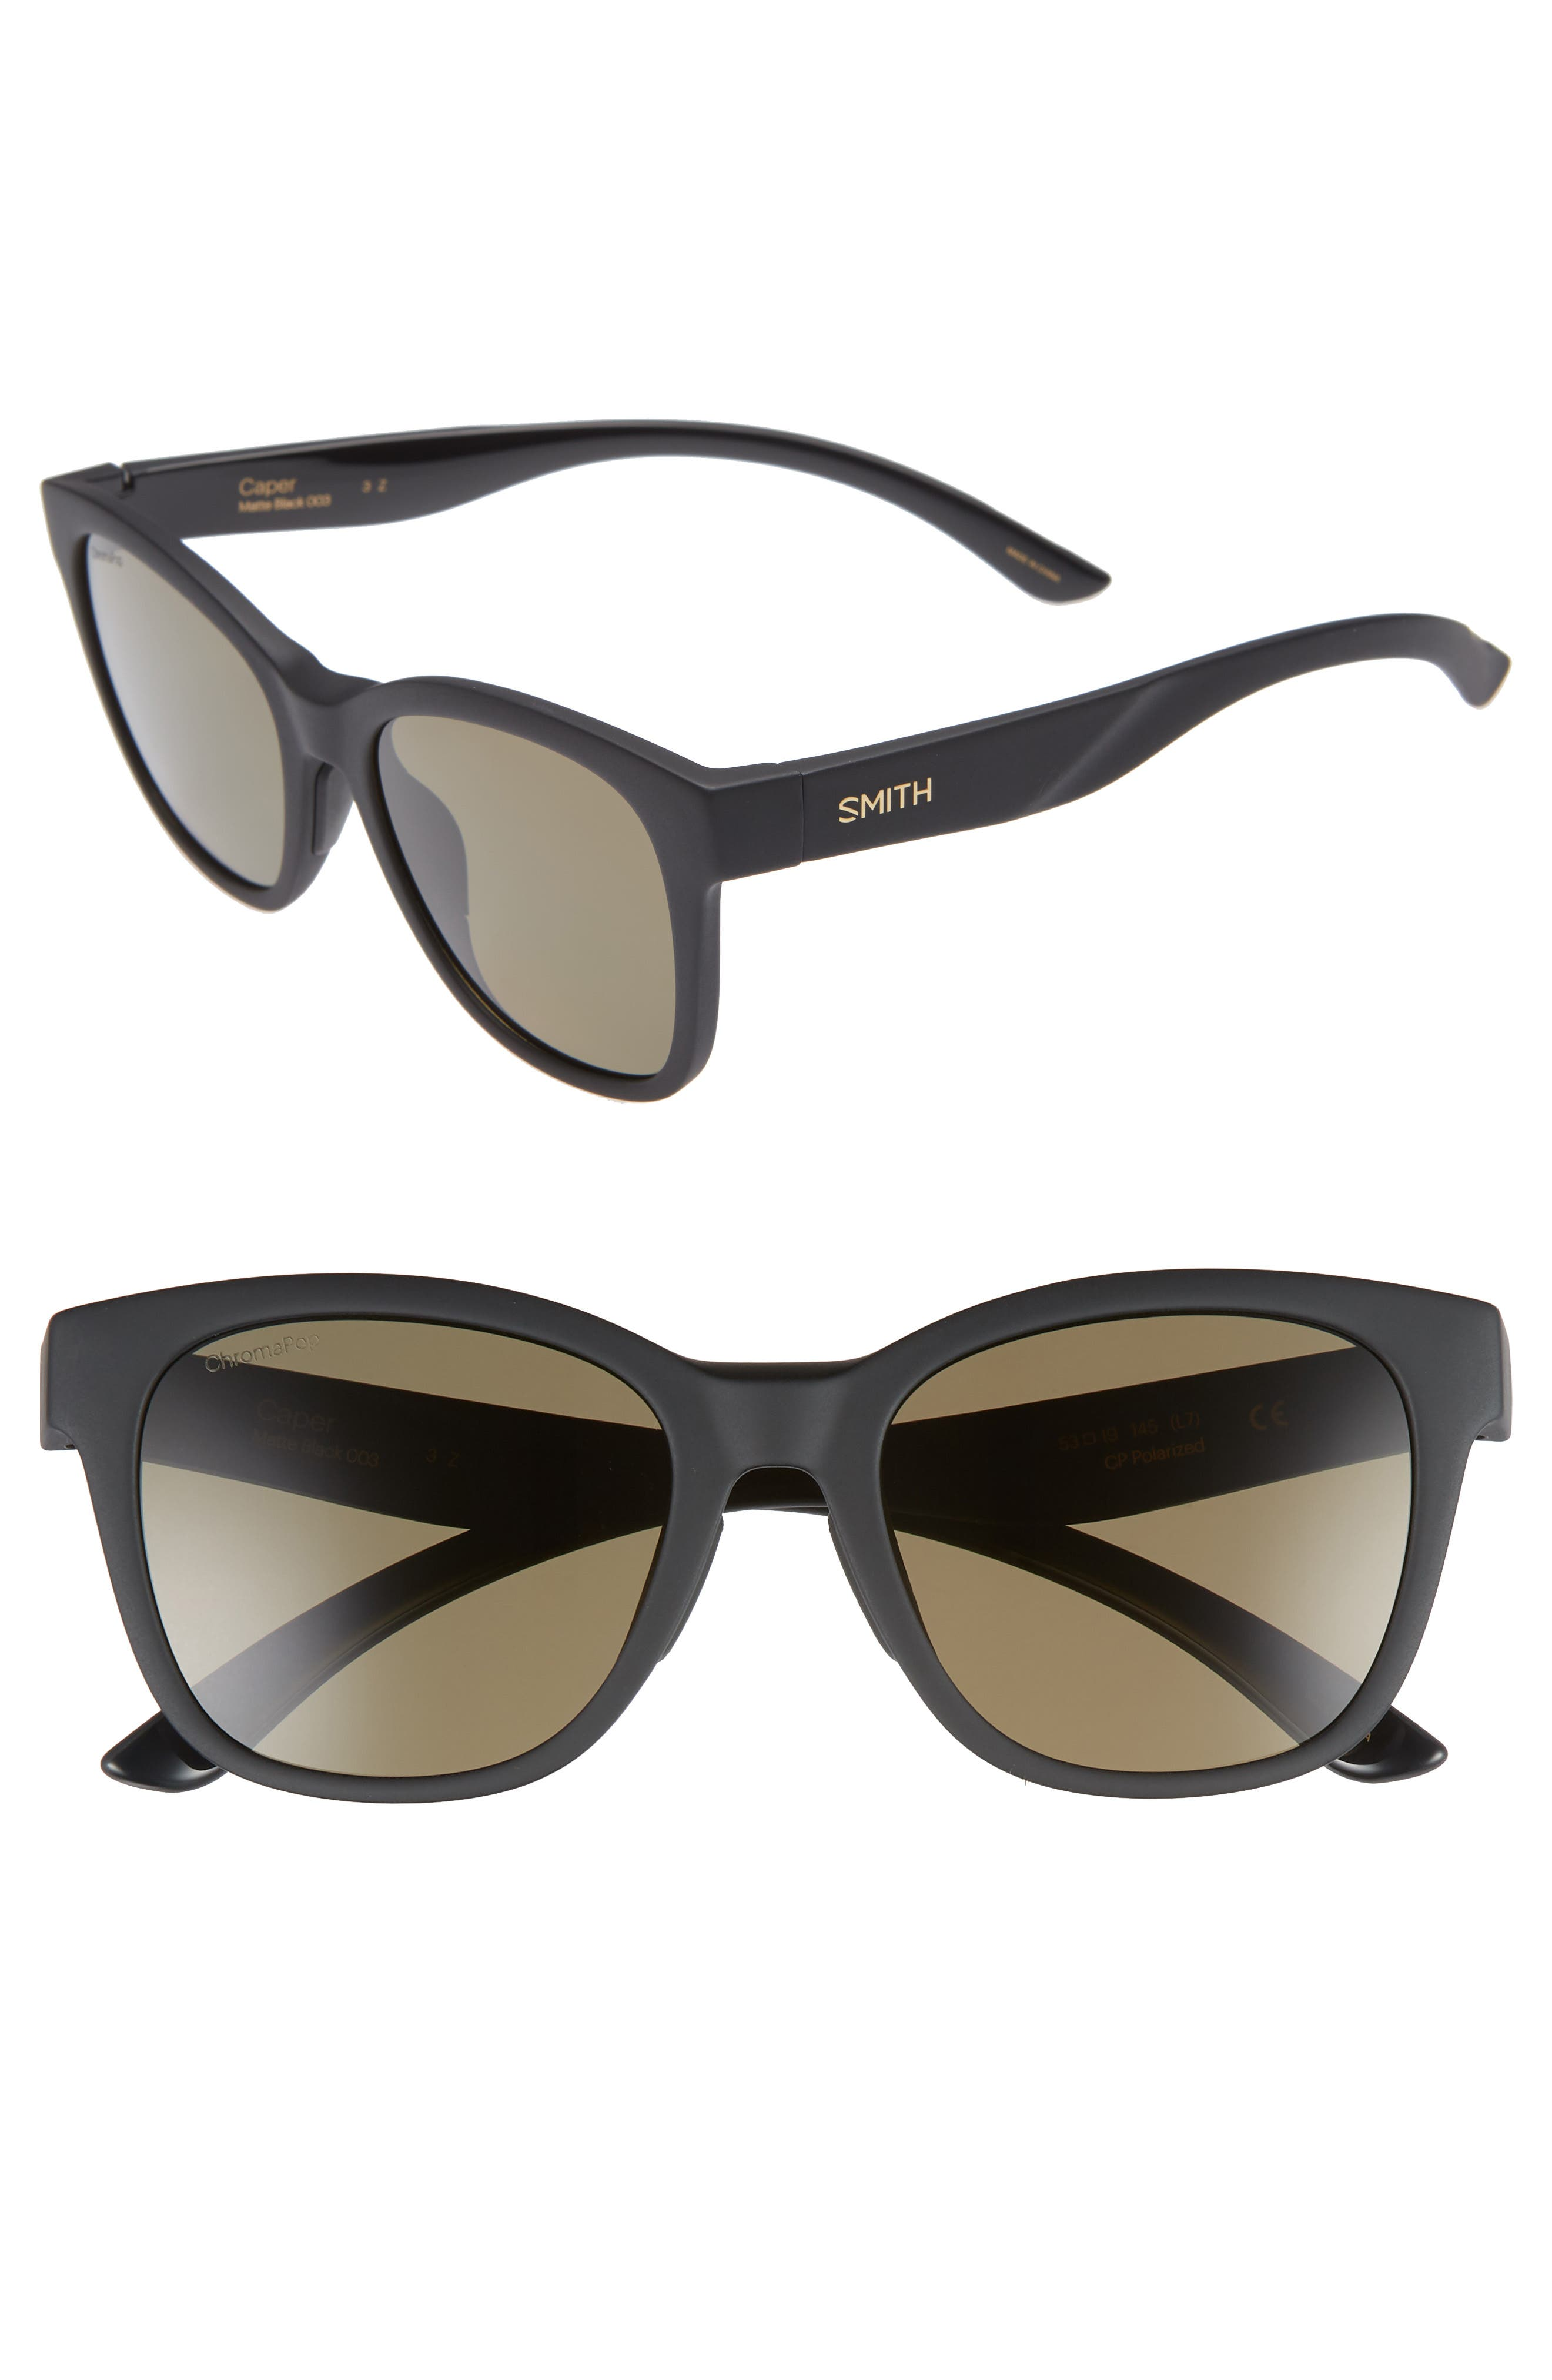 SMITH CAPER 53MM CHROMAPOP(TM) SQUARE SUNGLASSES - MATTE BLACK